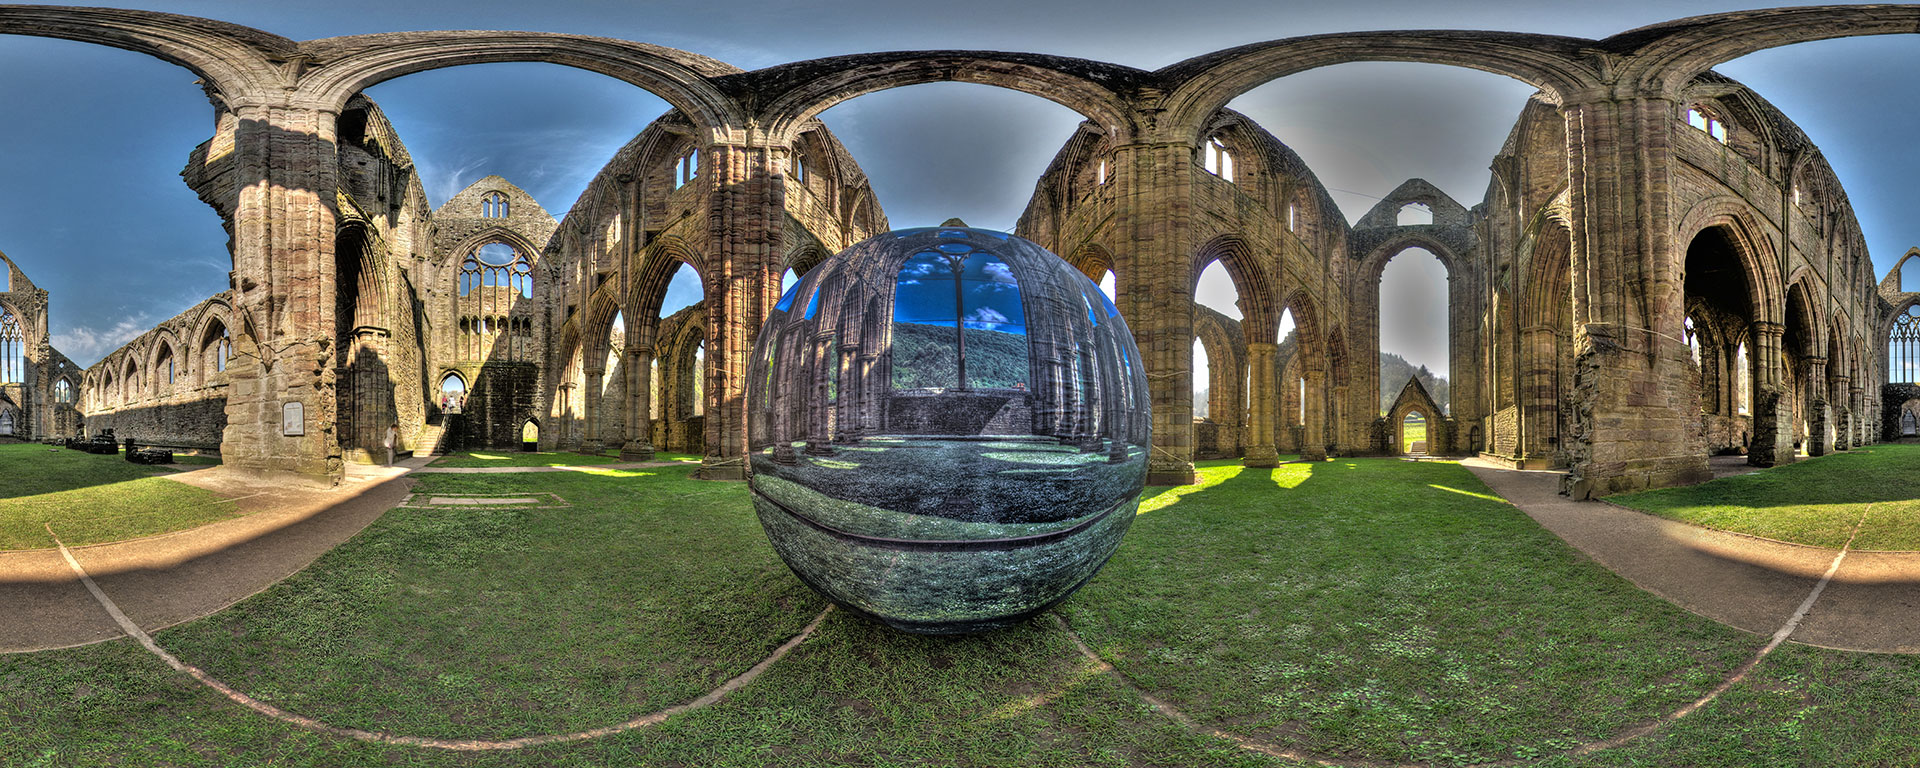 RELICS-HOMEPAGE-SLIDE-05-1920-X-768-TINTERN-ABBEY